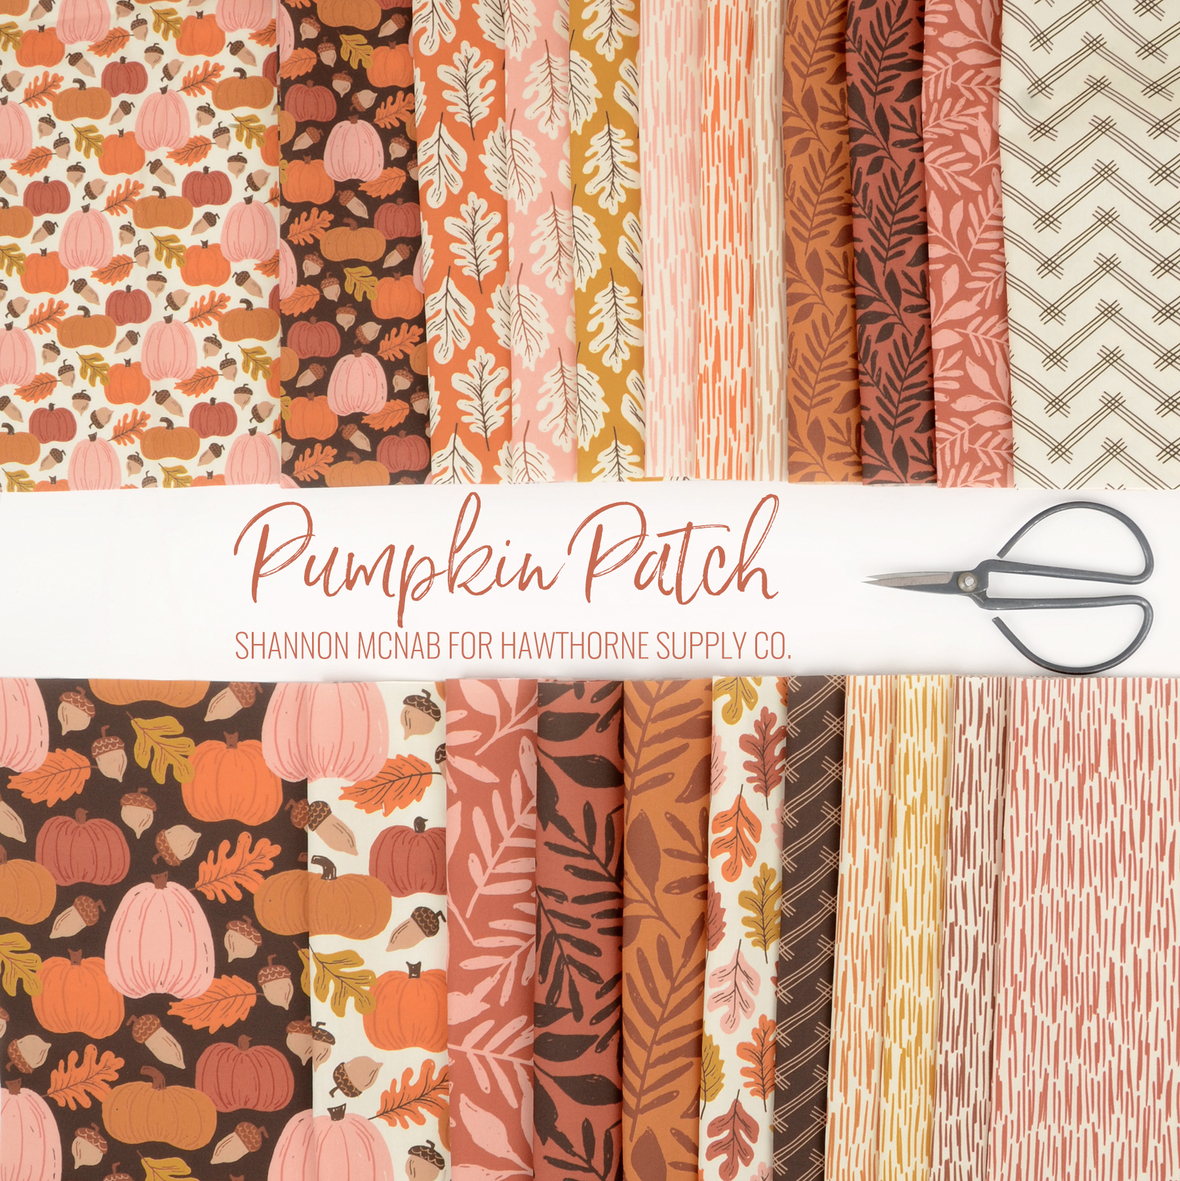 Pumpkin Patch by Shannon McNab fall fabric at Hawthorne Supply Co.